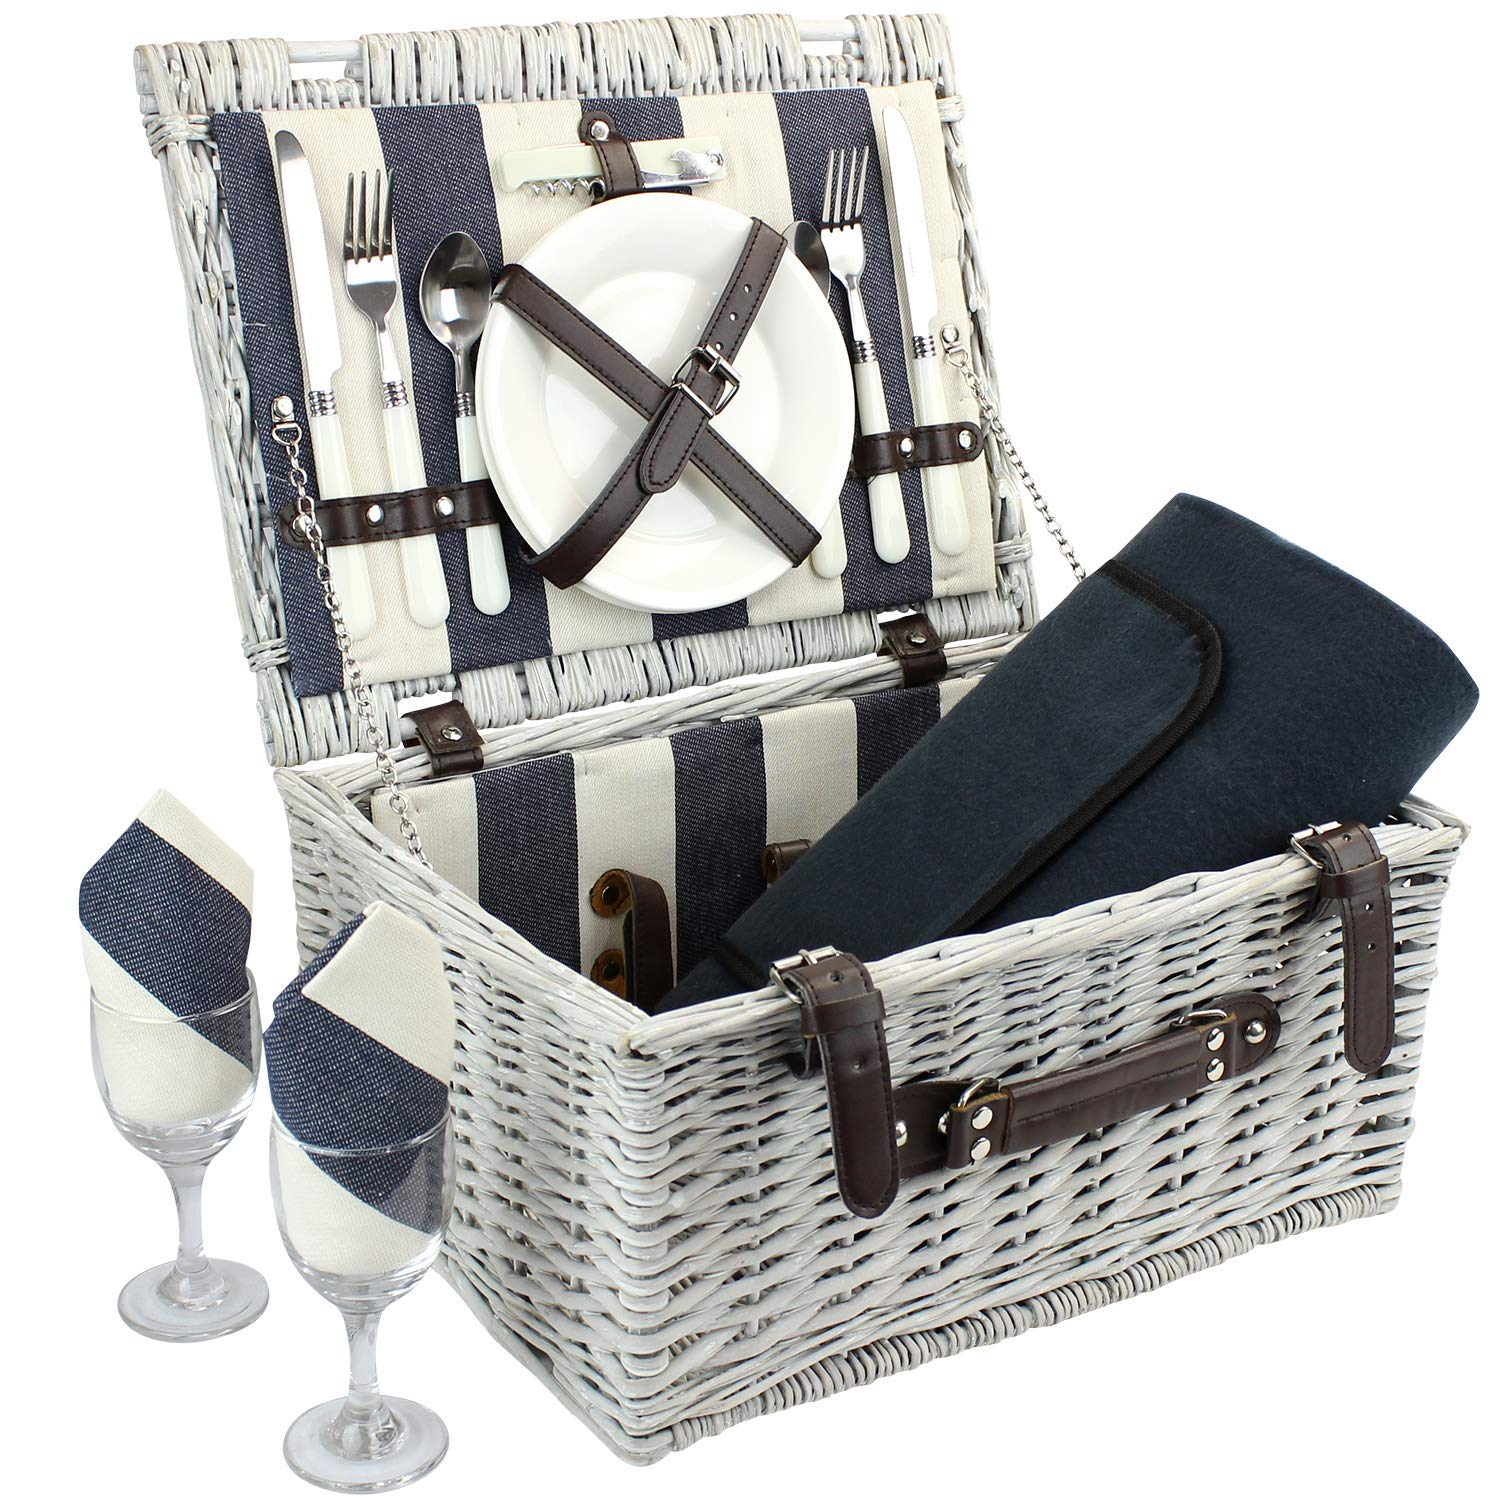 Home Innovation Picnic Basket for 2 with Waterproof Blanket, Durable Wicker Picnic Hamper Set, Willow Picnic Basket Accessories Plates and Utensils, Perfect Wedding, Anniversary or Birthday Gift